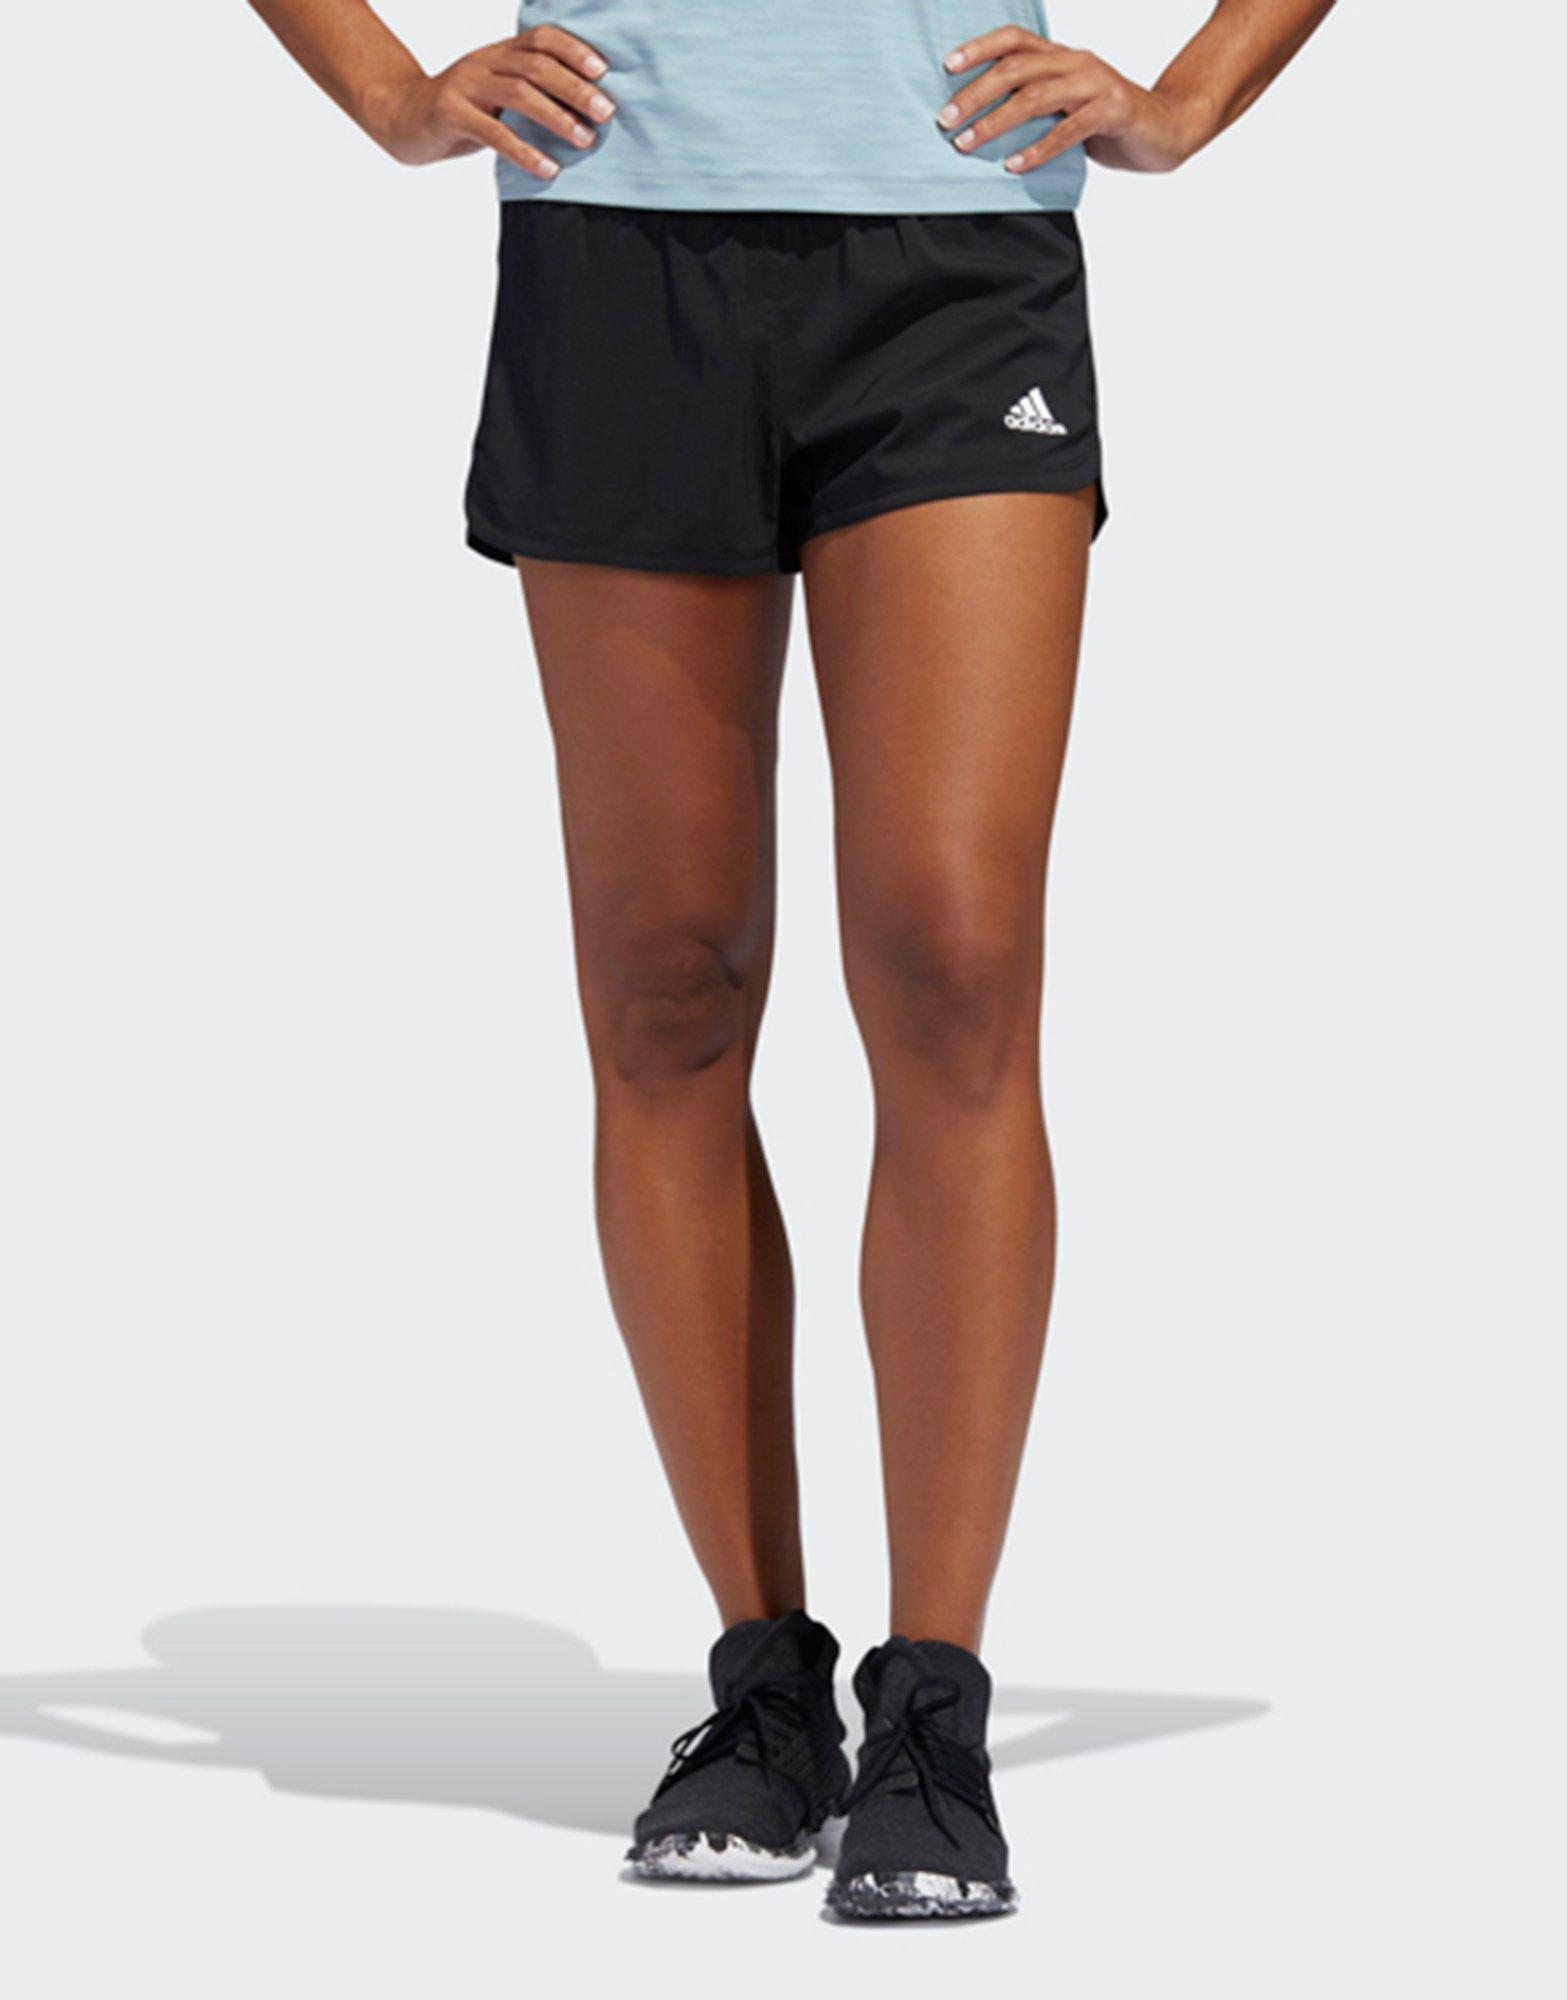 adidas performance shorts